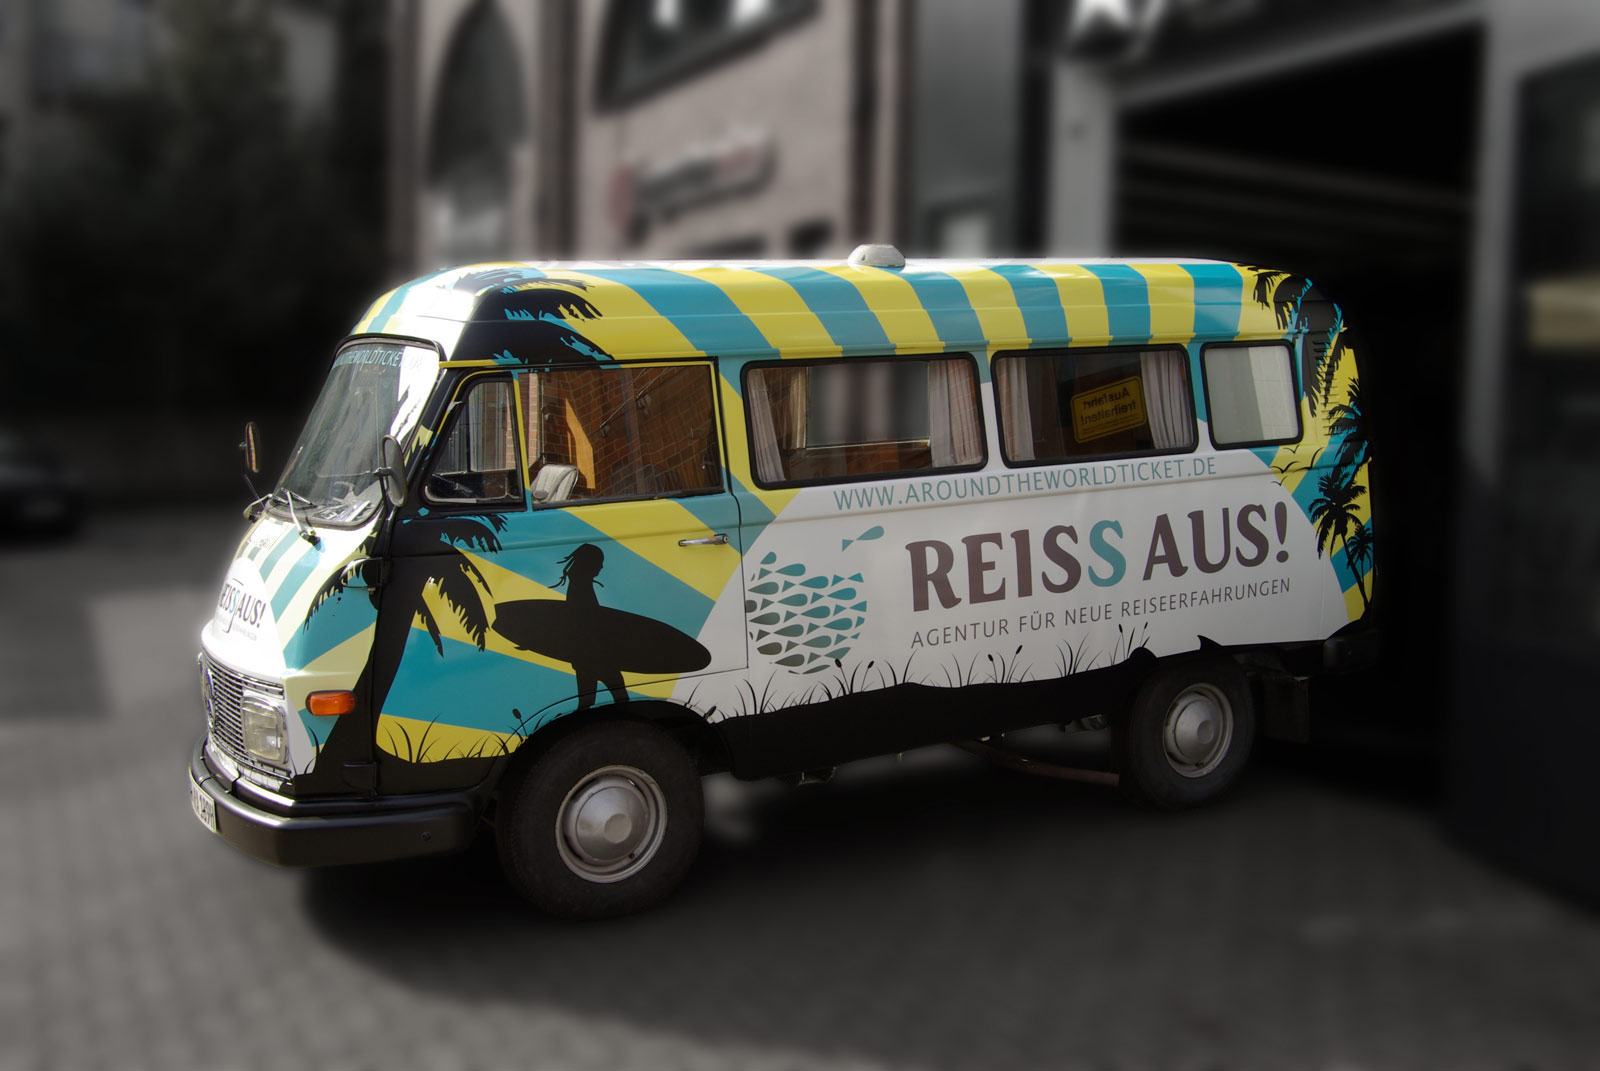 TITEL_HANOMAG_3D_DIGITALDRUCK_REISS_AUS_06